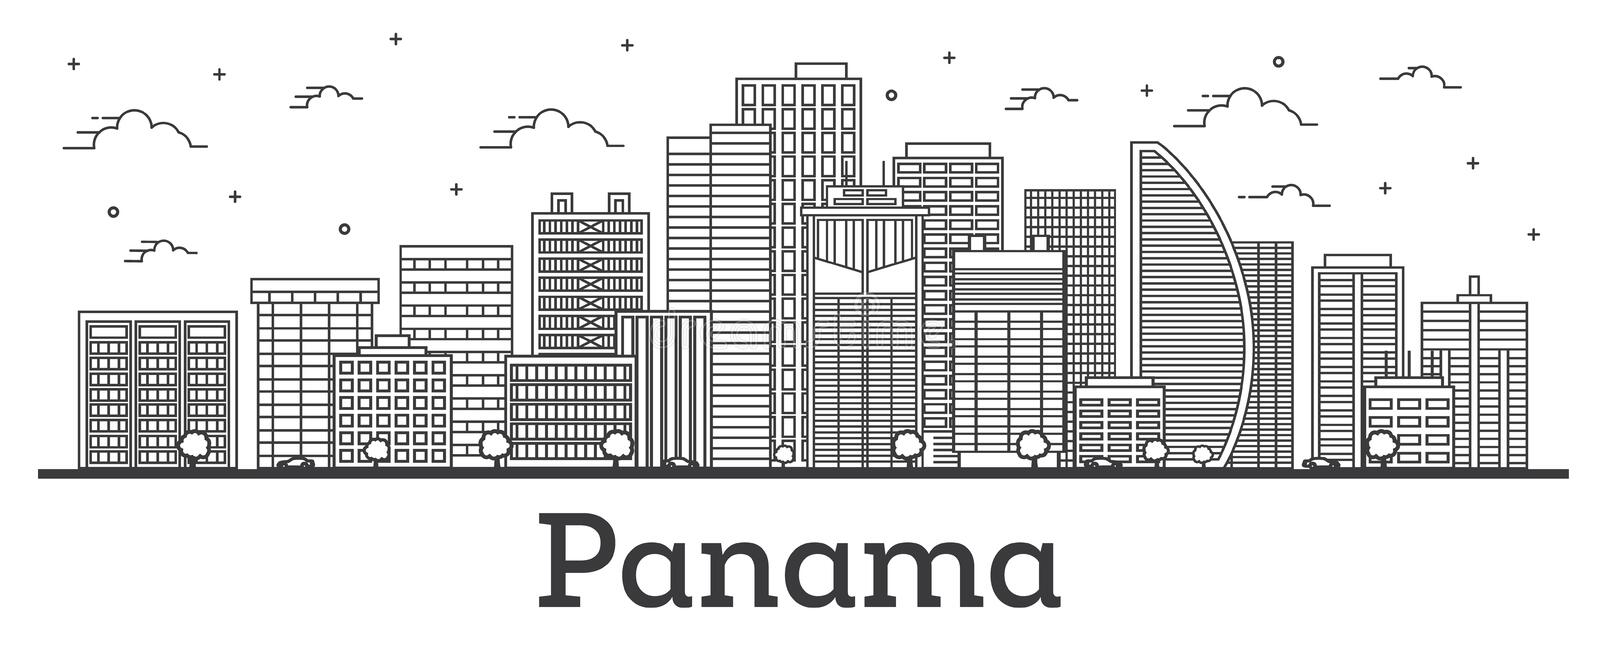 Outline Panama City Skyline with Modern Buildings Isolated on White vector illustration